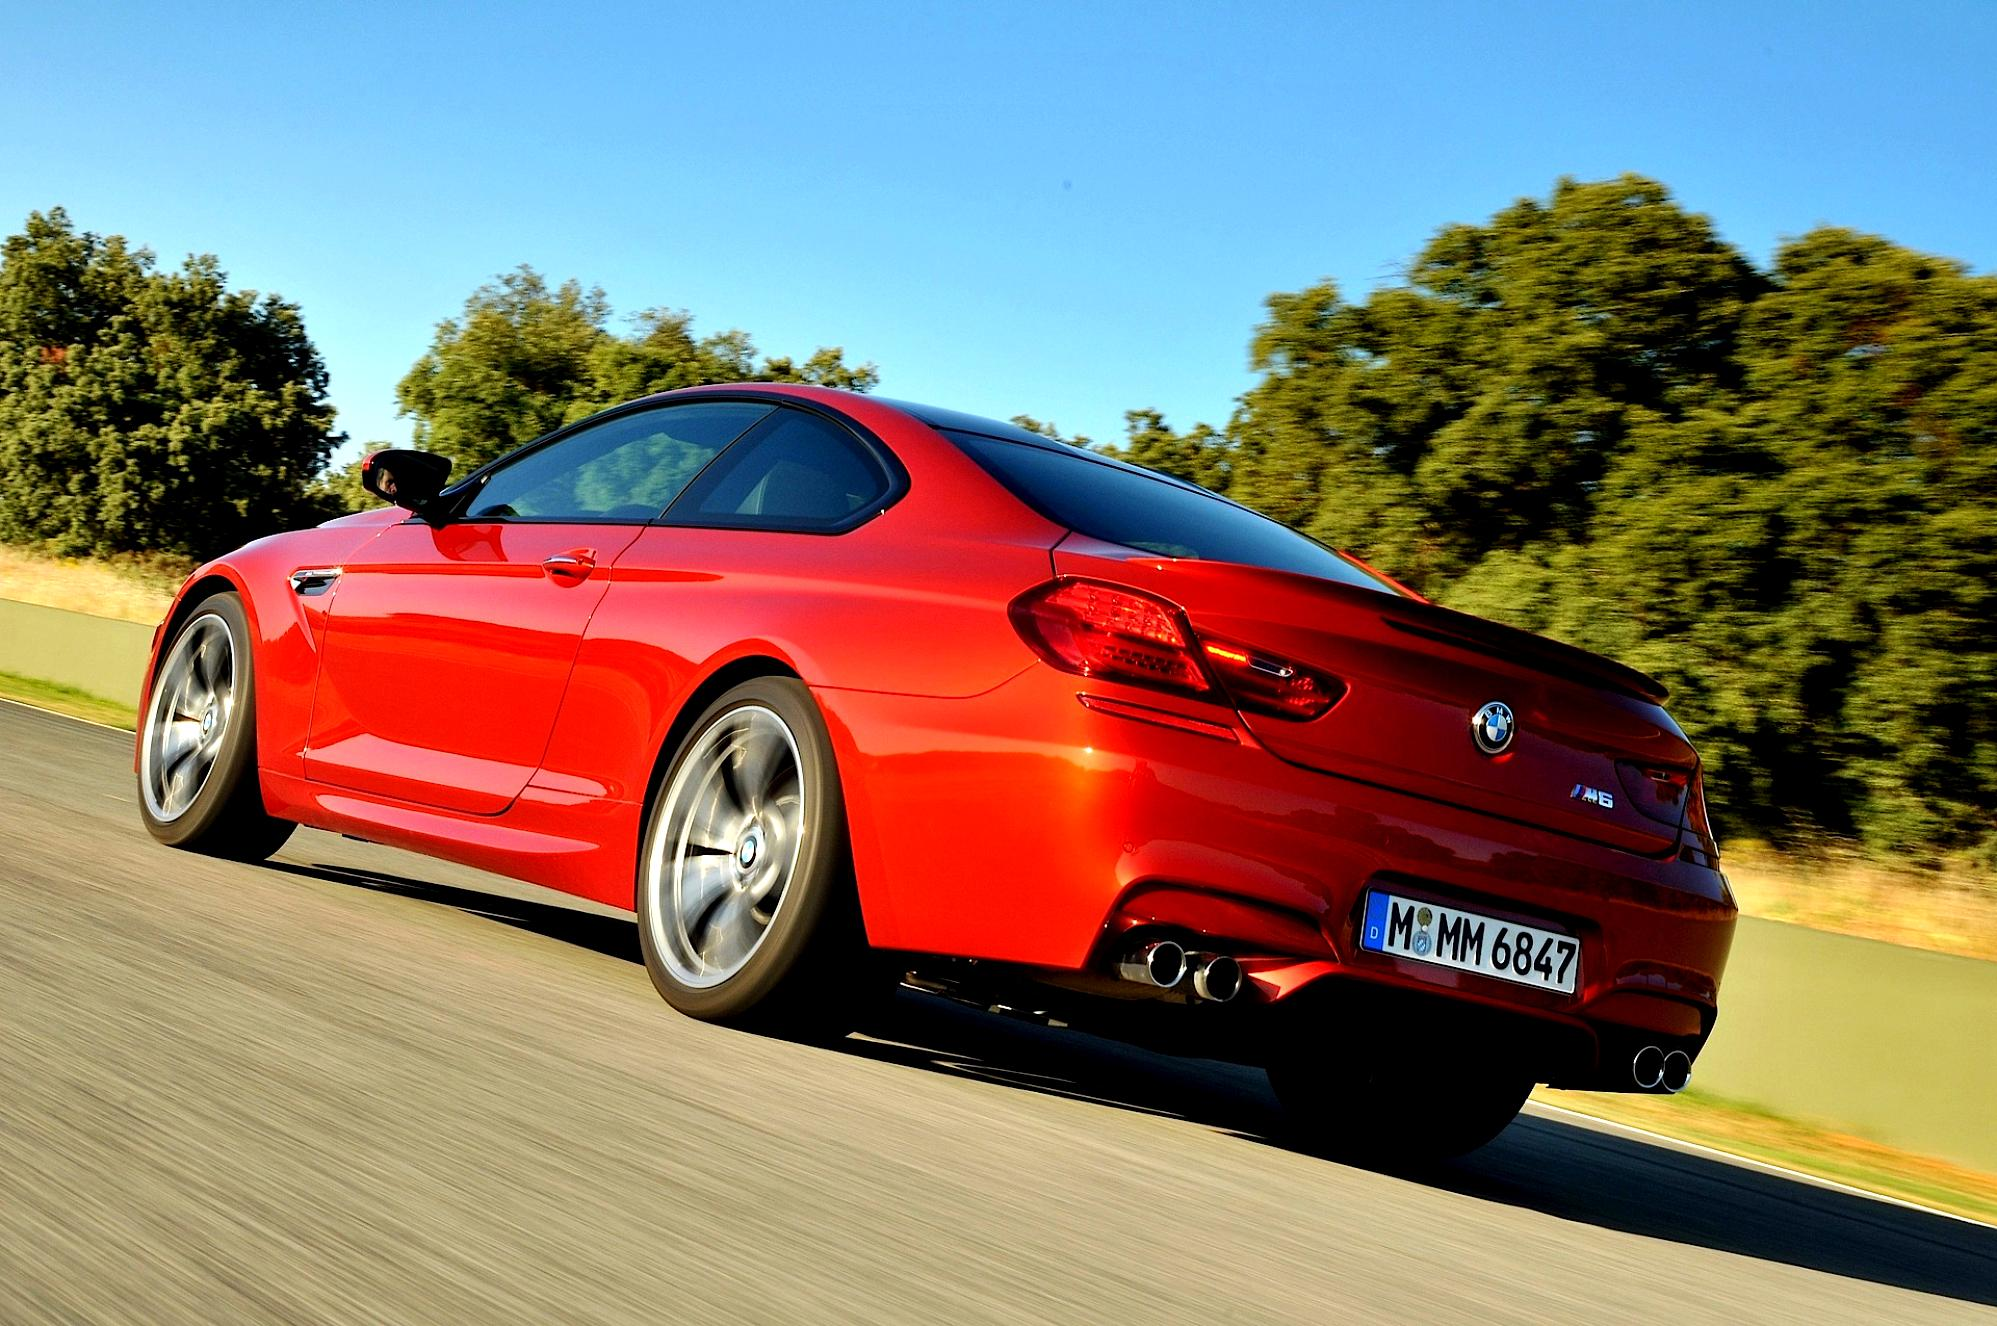 BMW M6 Coupe F13 2012 #47